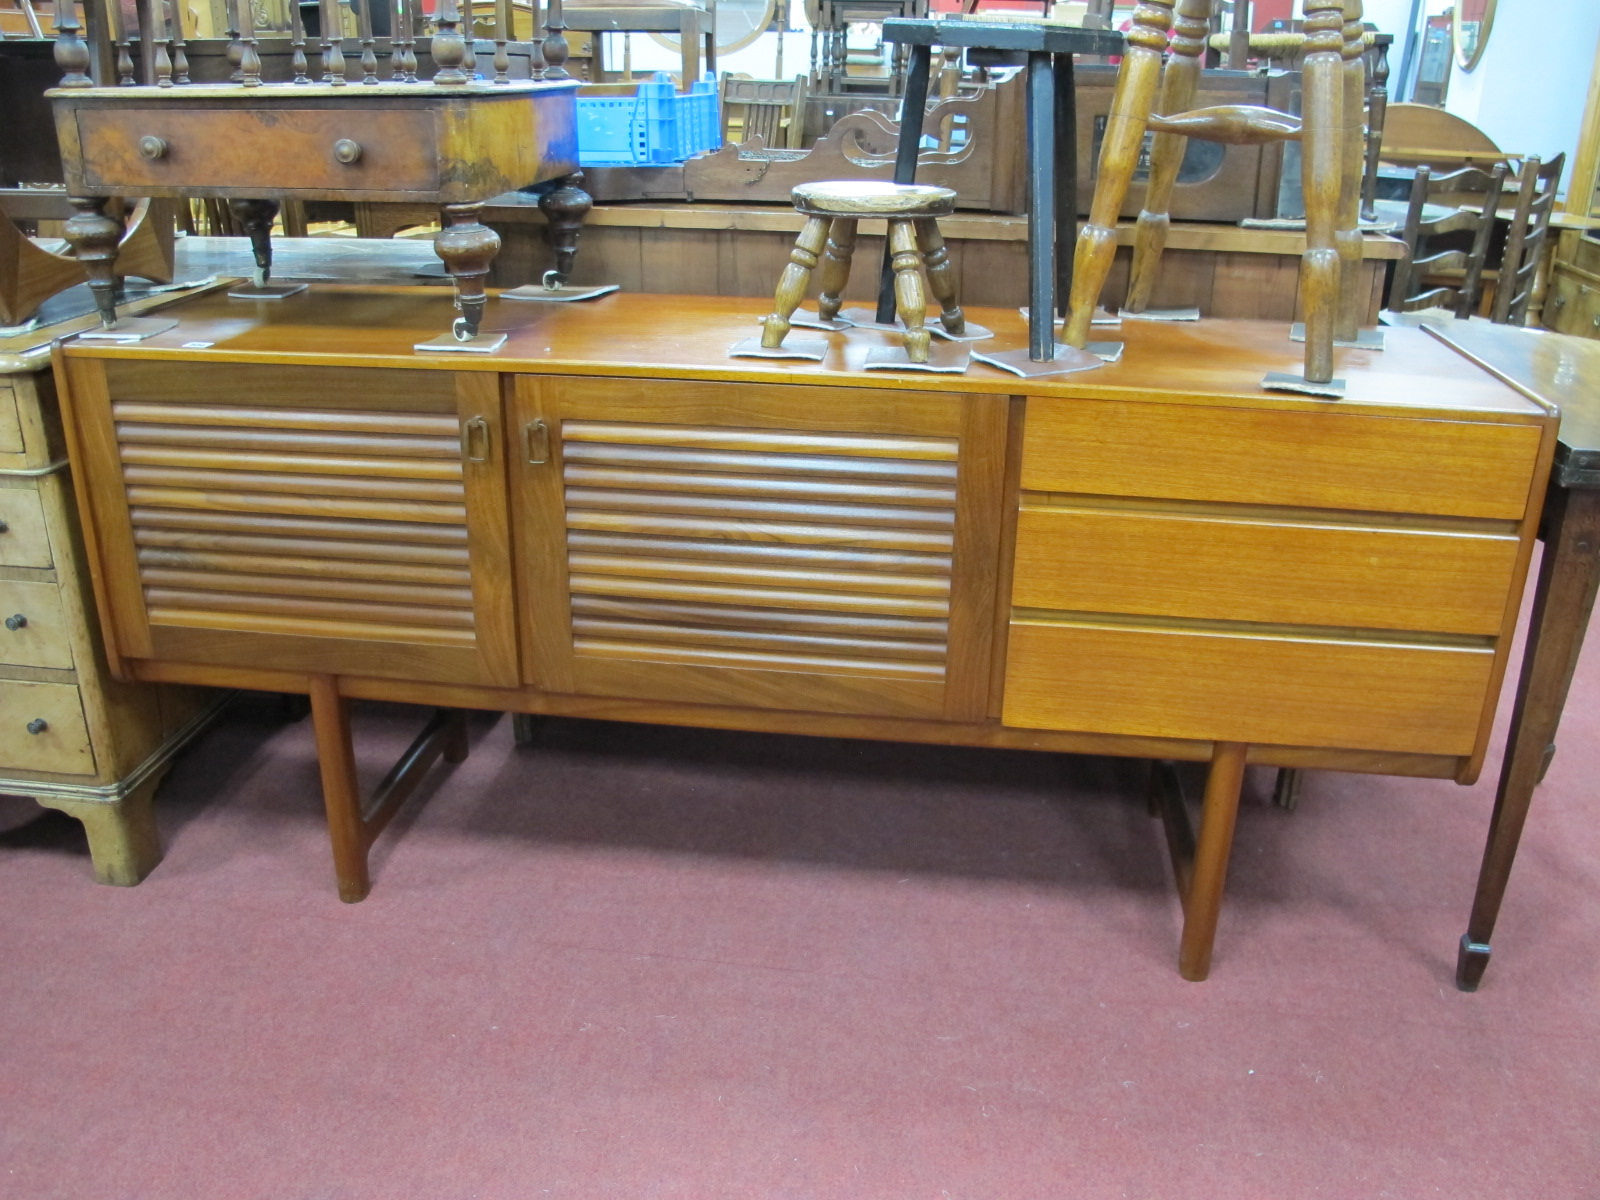 Lot 934 - McIntosh Teak Sideboard, with twin louvre type doors and right flight of three drawers, 170cm wide.